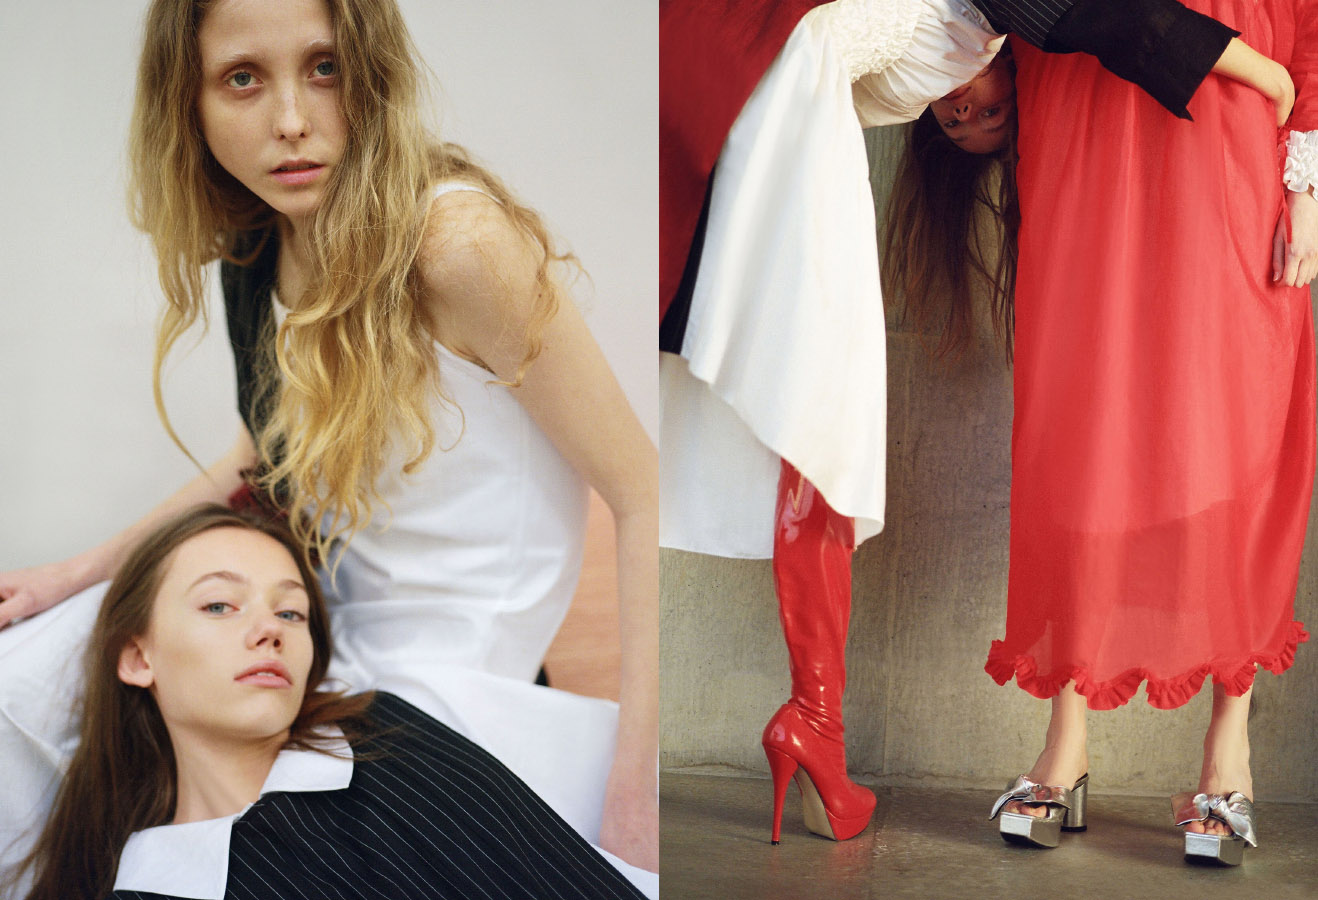 Lydia wears coat styled as a dress   MASHAEL ALRAJHI  . Franny wears white shirt   CECILIE BAHNSEN  red shirt   MASHAEL ALRAJHI  . Lydia wears all clothes   MASHAEL ALRAJHI   boots  STYLIST'S OWN.  Franny wears all clothes   MASHAEL ALRAJHI   shoes   IRENE SJ YU